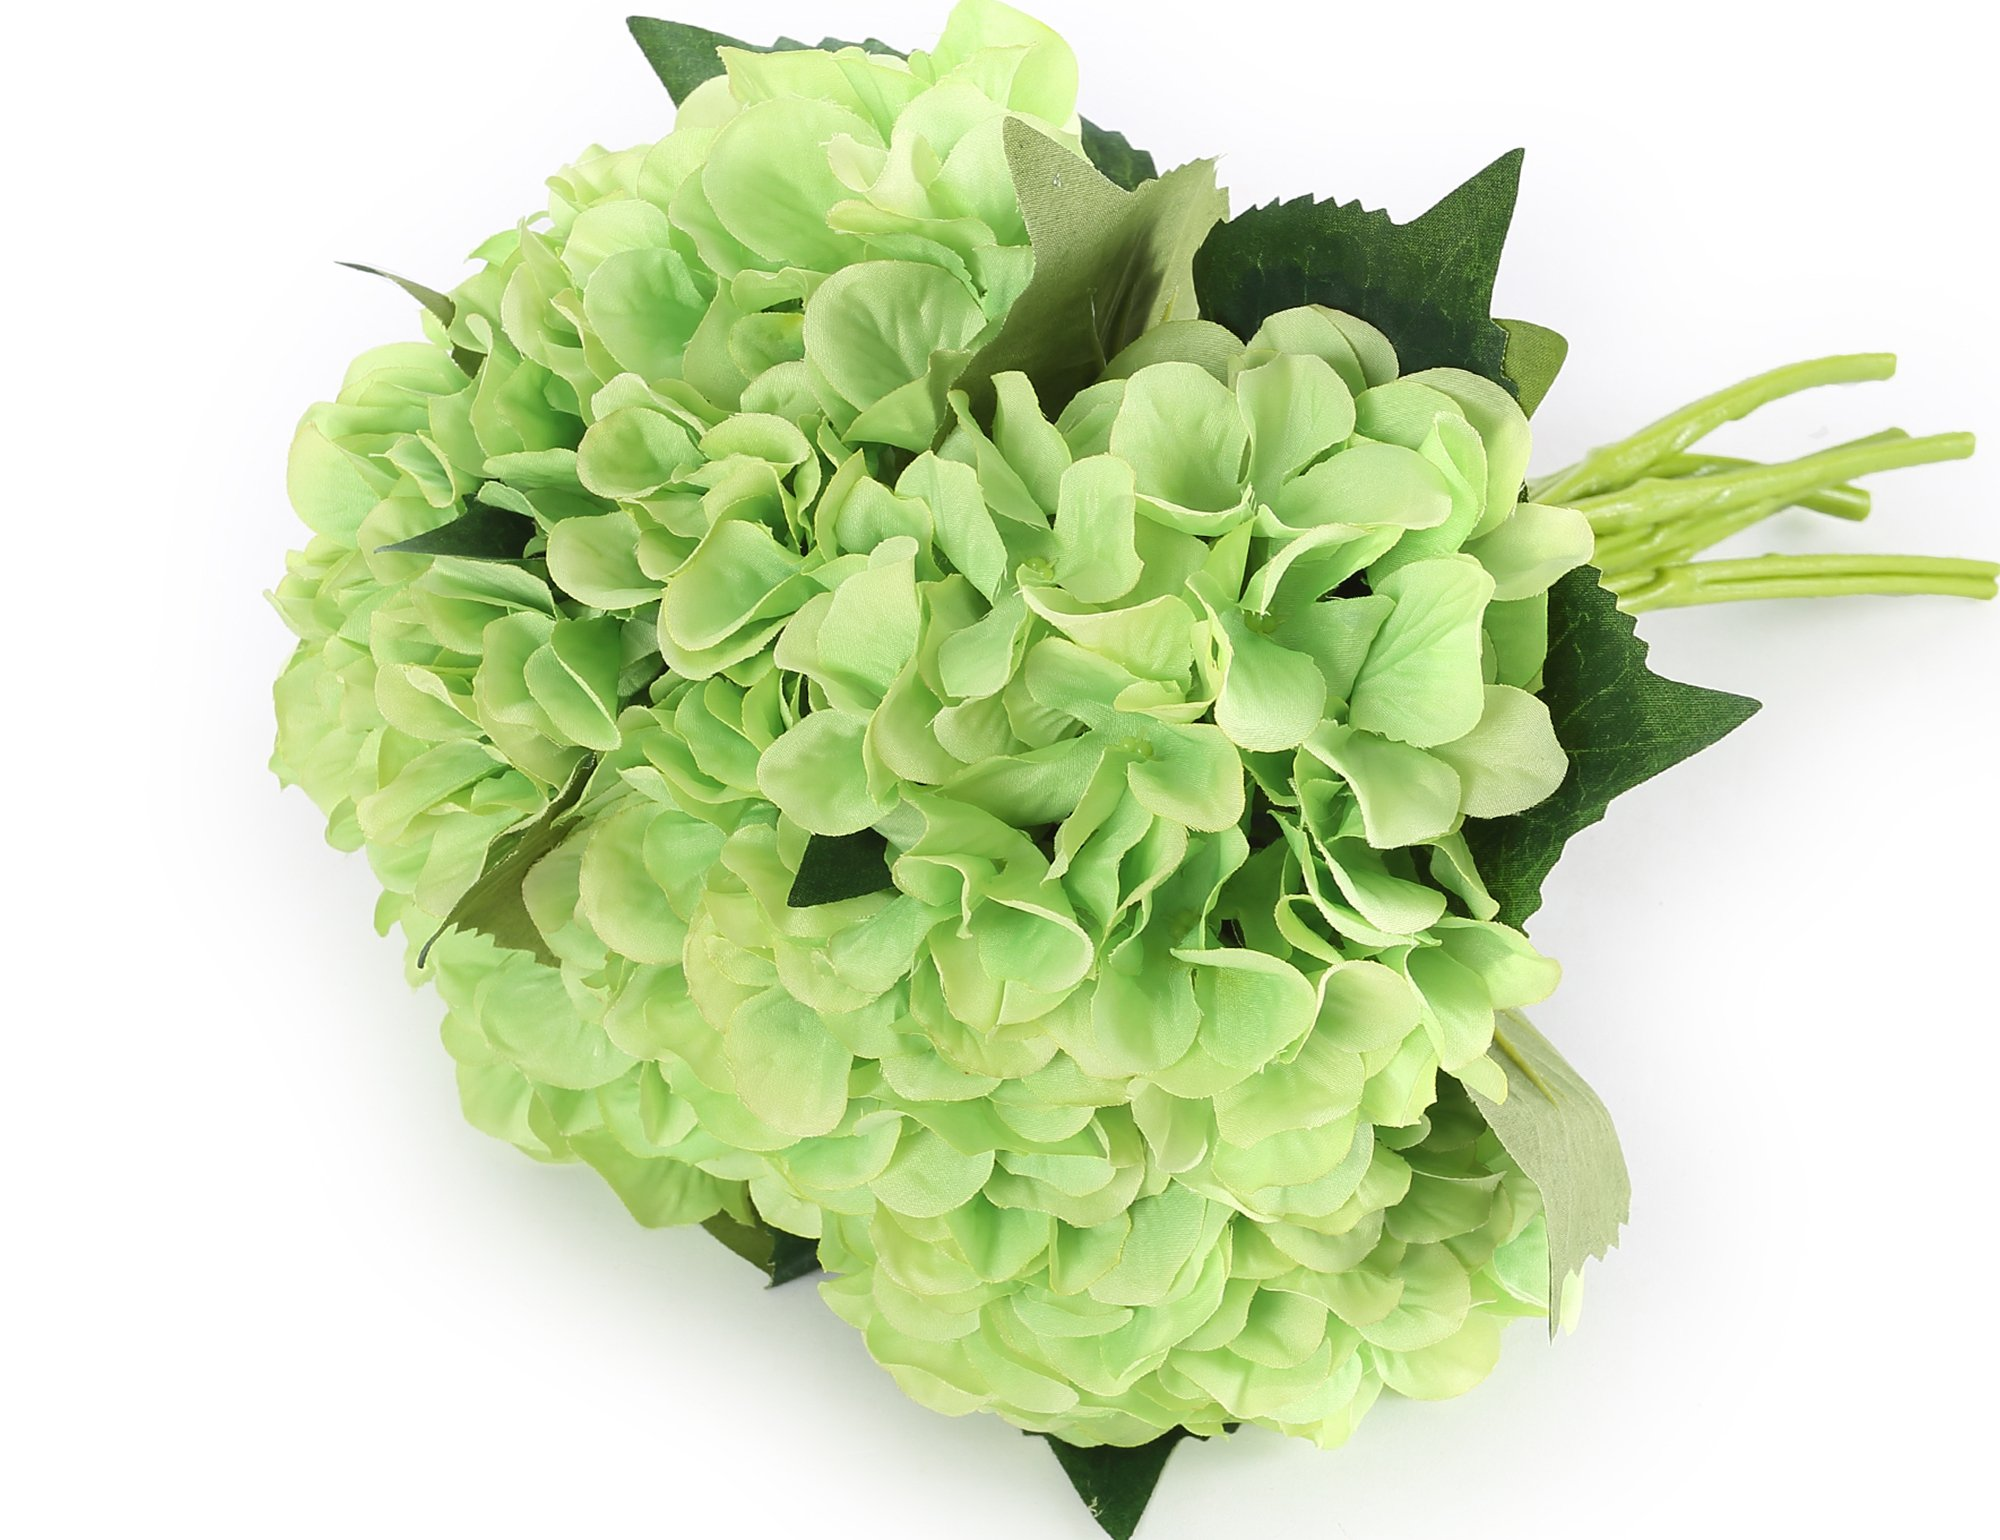 Greentime 6 Bunchs 8'' Artificial Flower Fake Hydrangea Bouquet Silk Flower Bouquet for Wedding, Room, Home, Hotel, Party Decoration Green